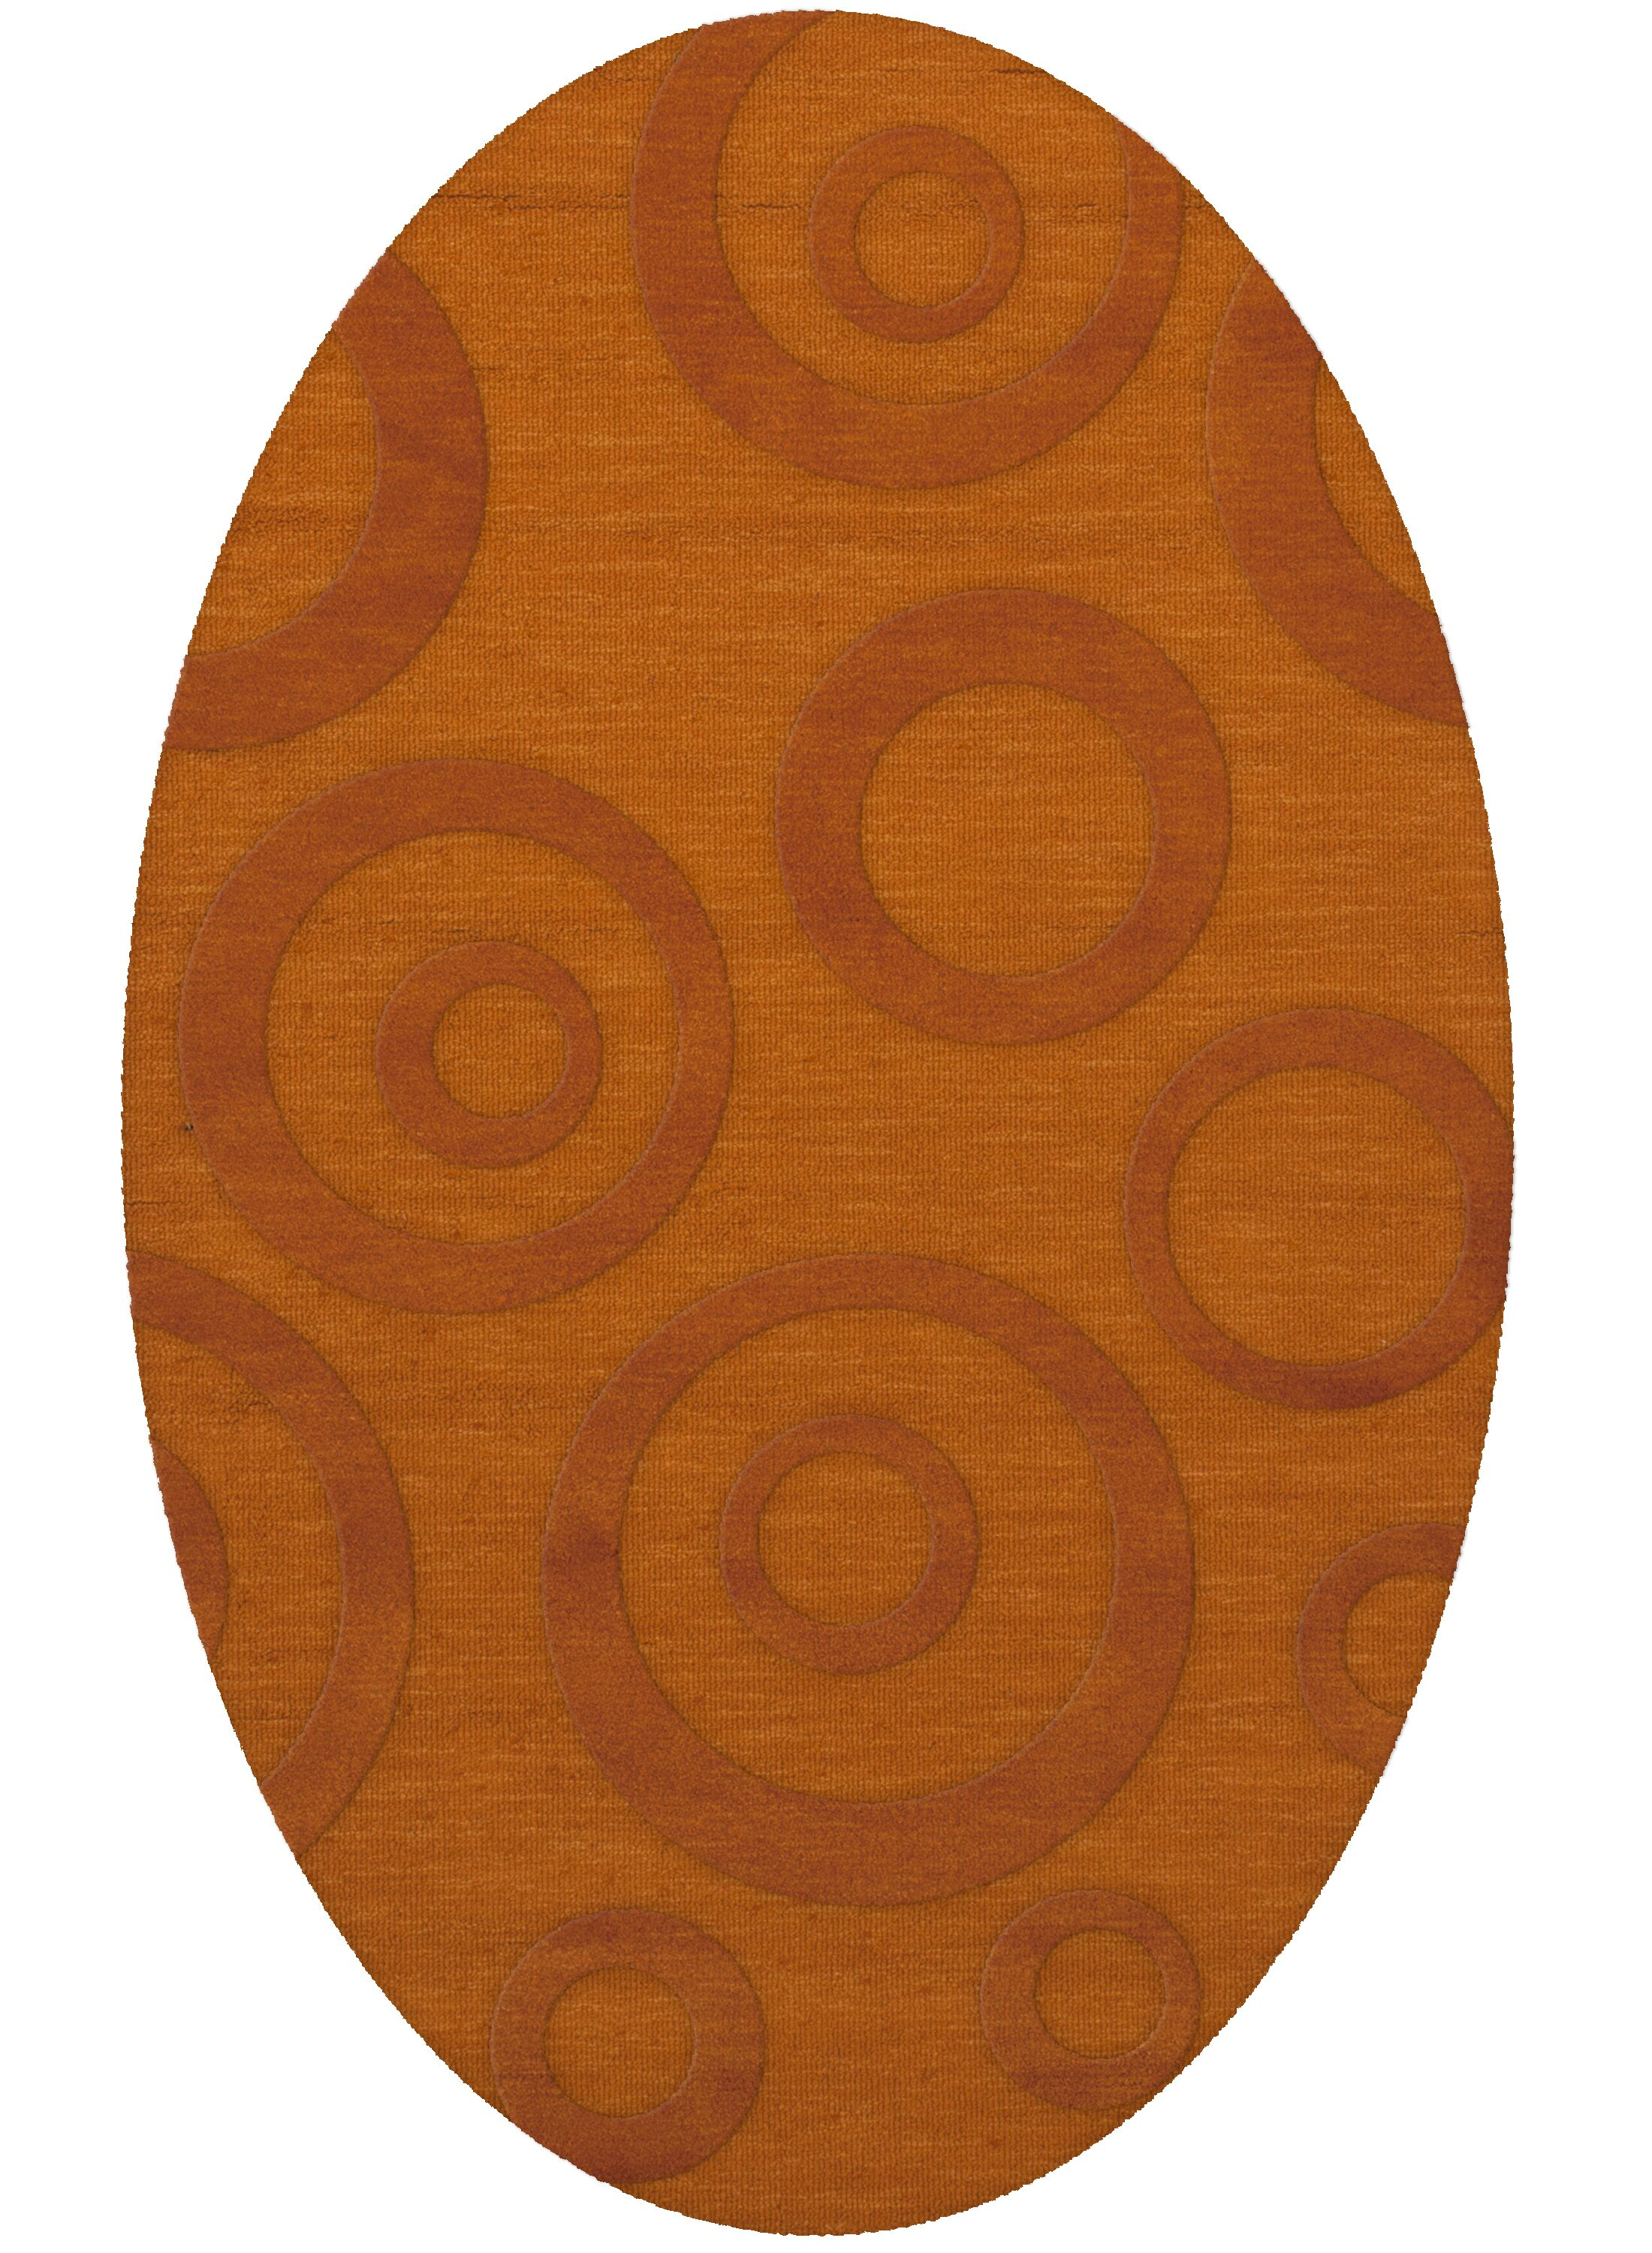 Dover Tufted Wool Orange Area Rug Rug Size: Oval 6' x 9'